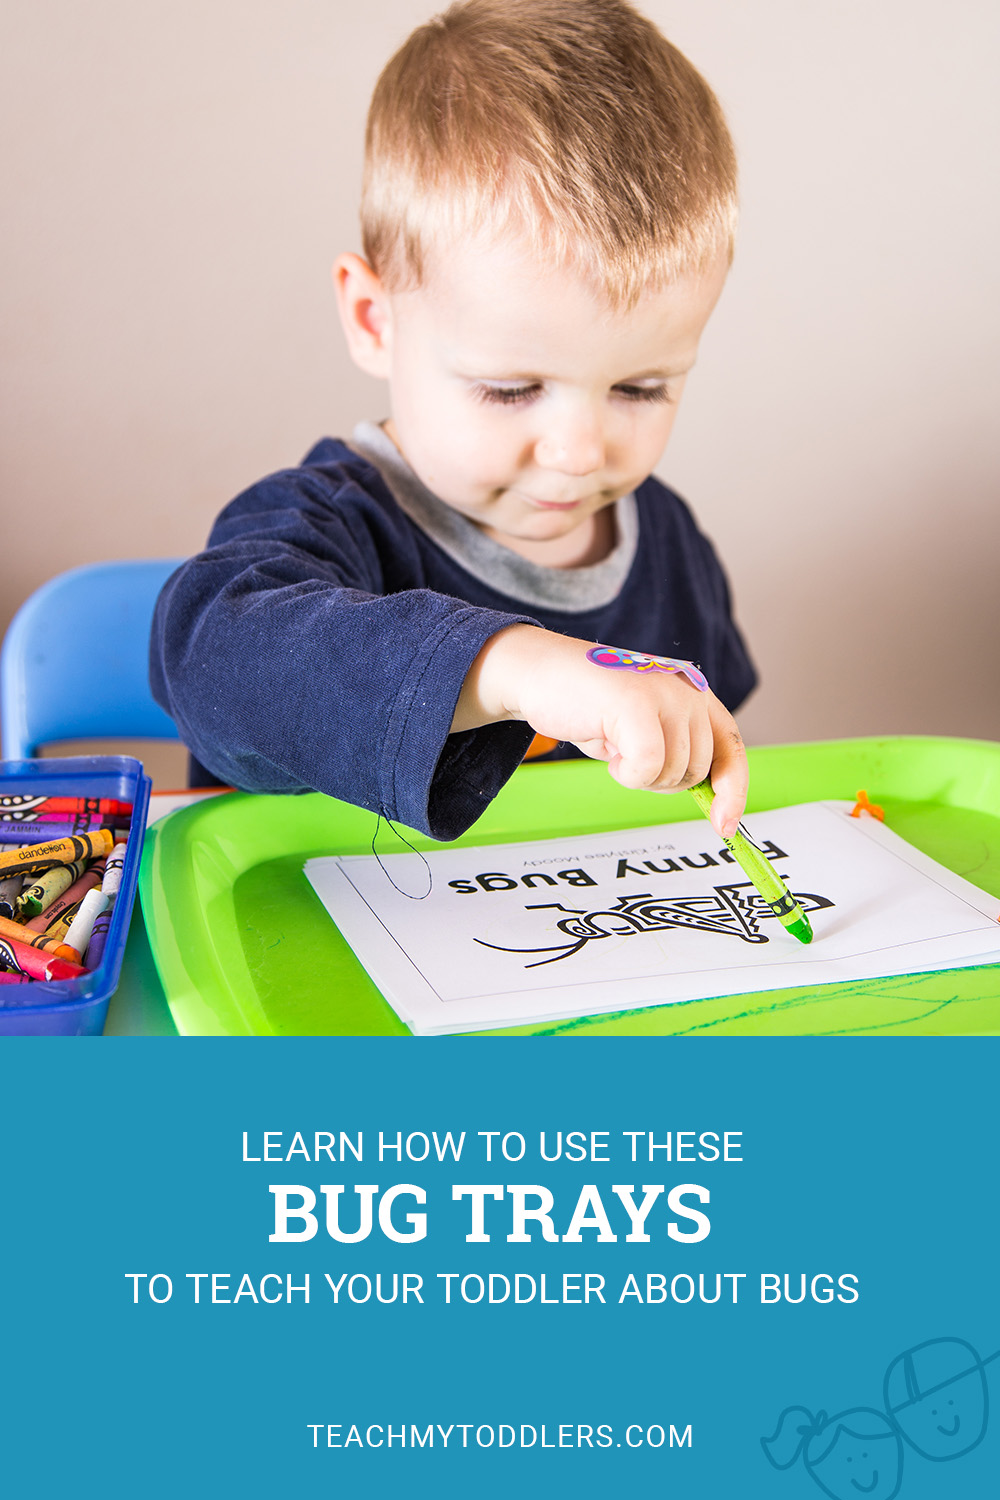 Learn how to use these bug trays to teach your toddlers about bugs